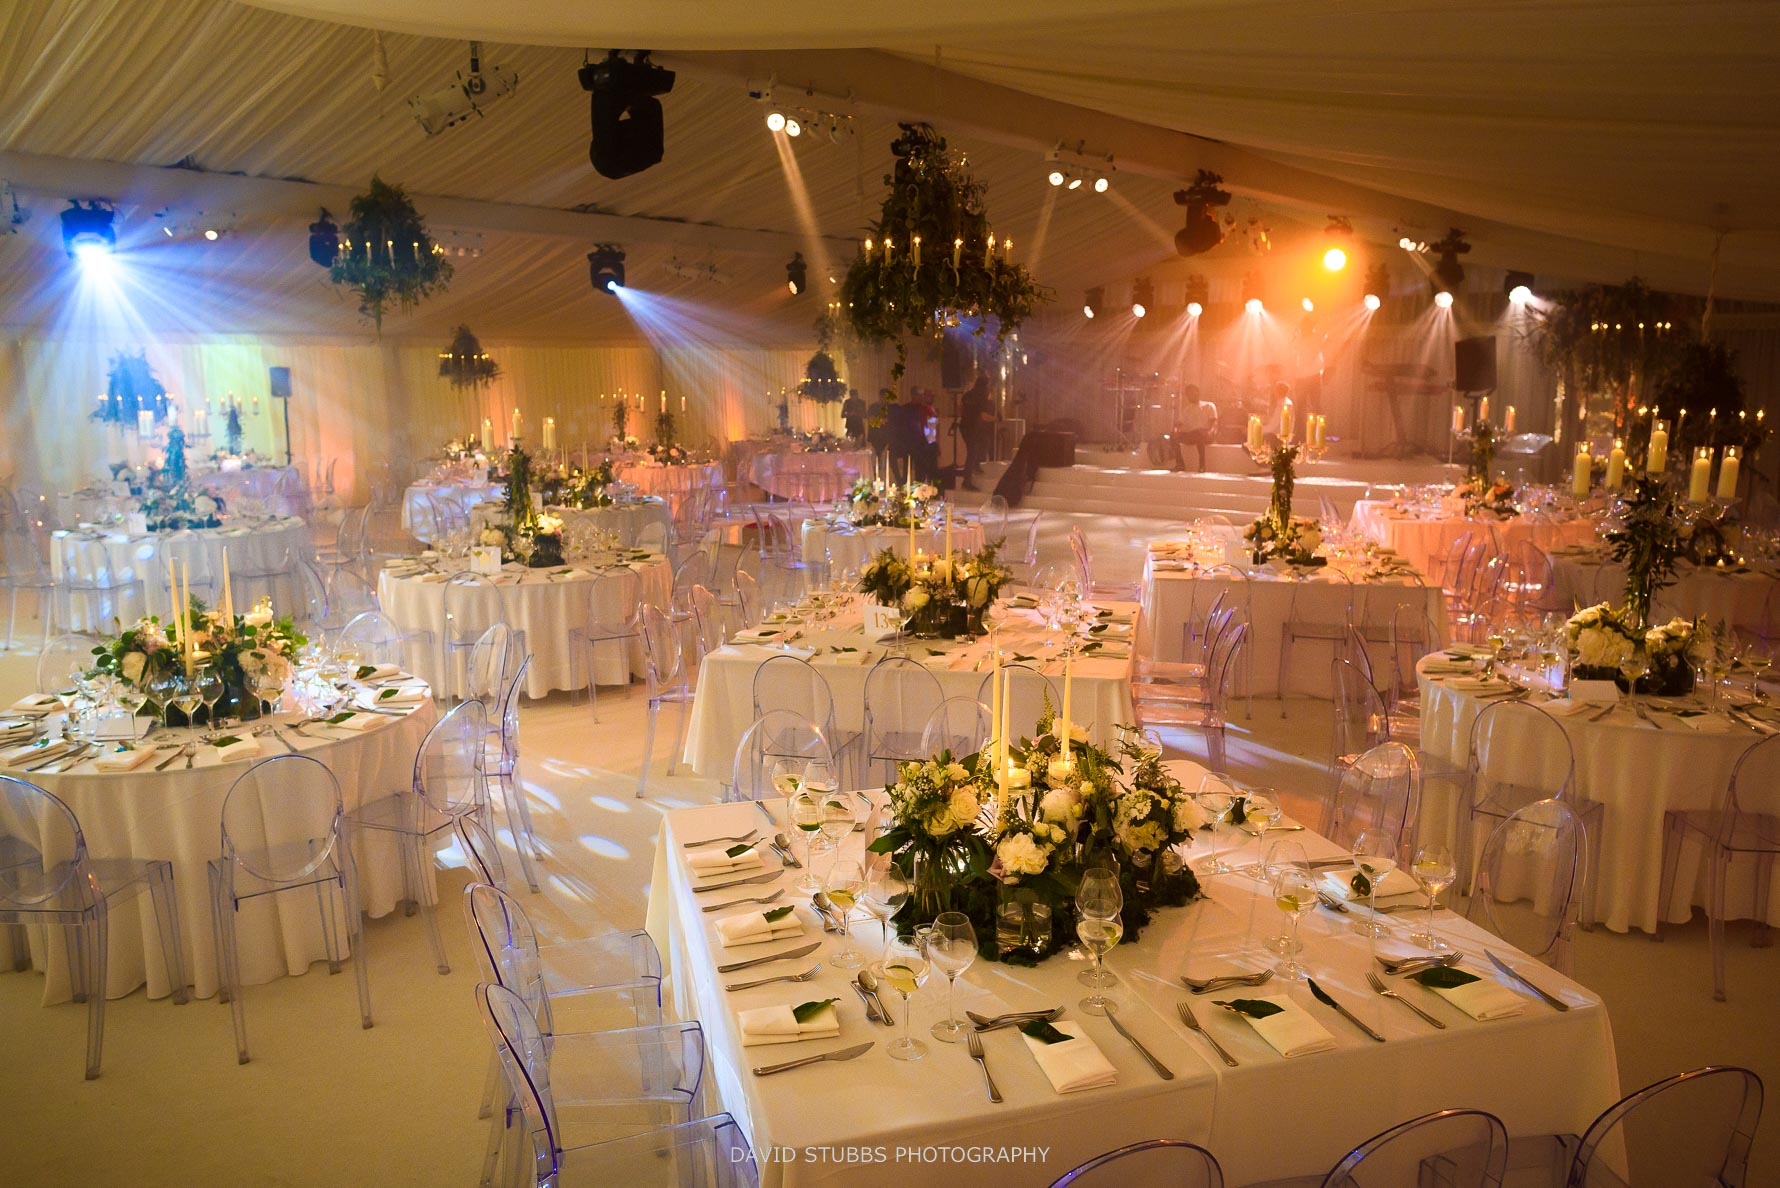 room set-up for meal and reception